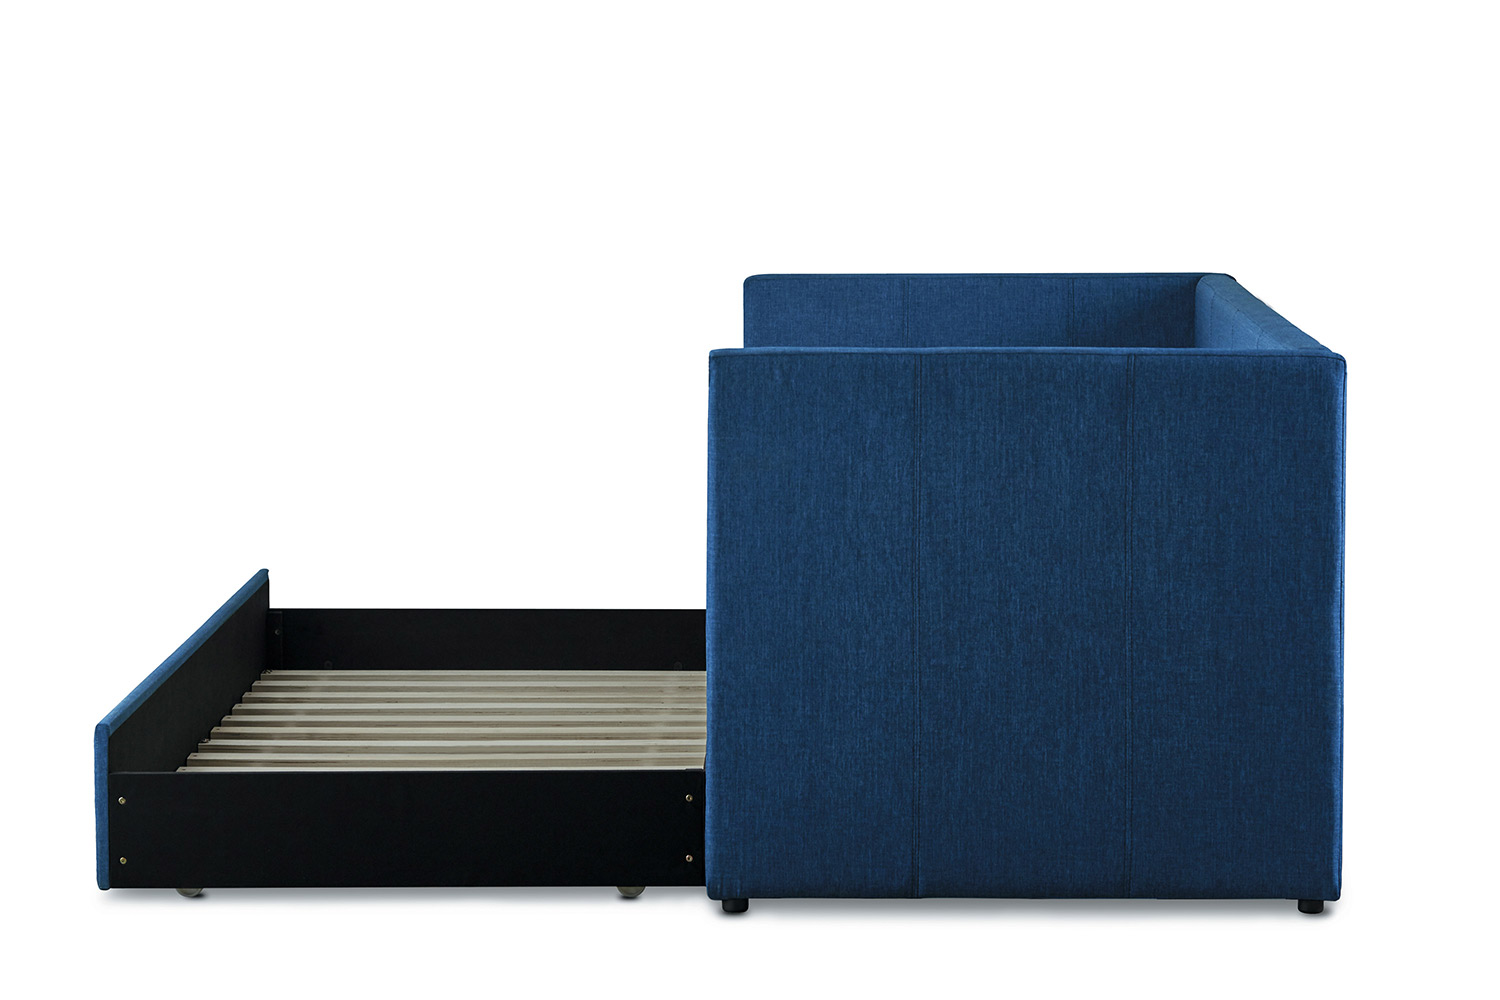 Homelegance Therese Daybed with Trundle - Blue